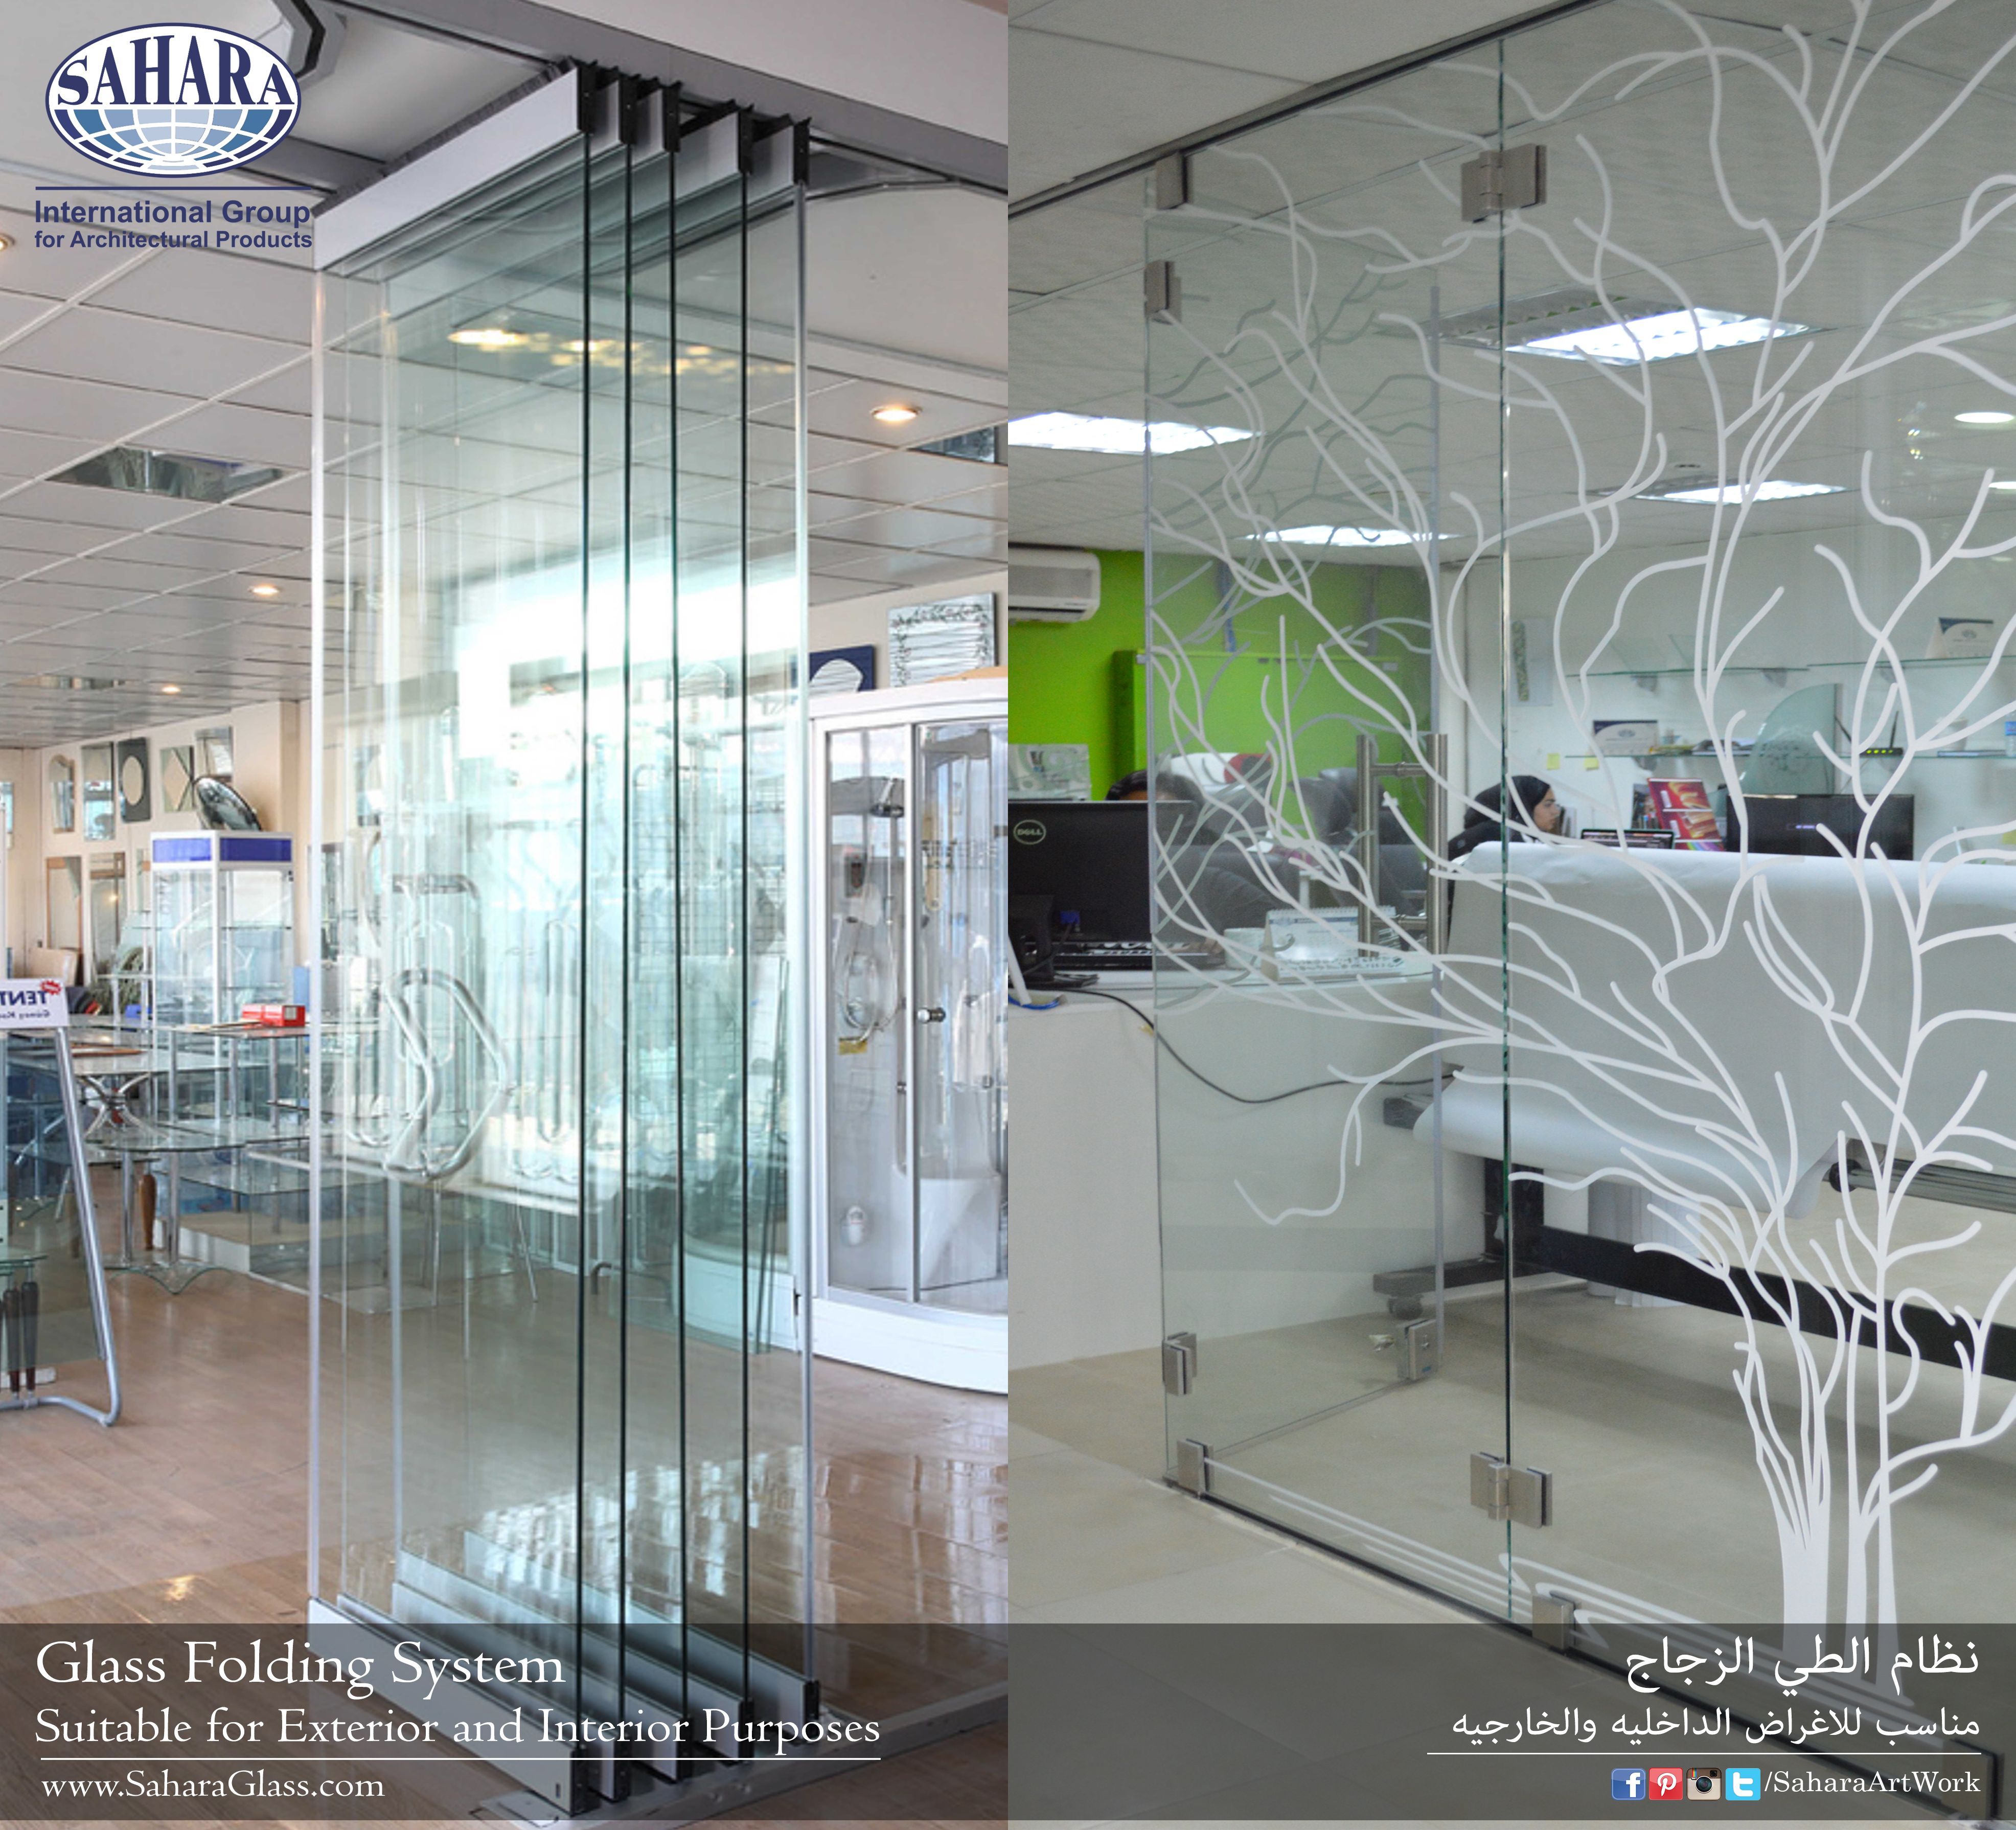 Glass Folding System For Interior And Exterior Purposes Come And Visit Our Showroom And Check Our Actual Sample Glas Door Design Door Glass Design Glass Door